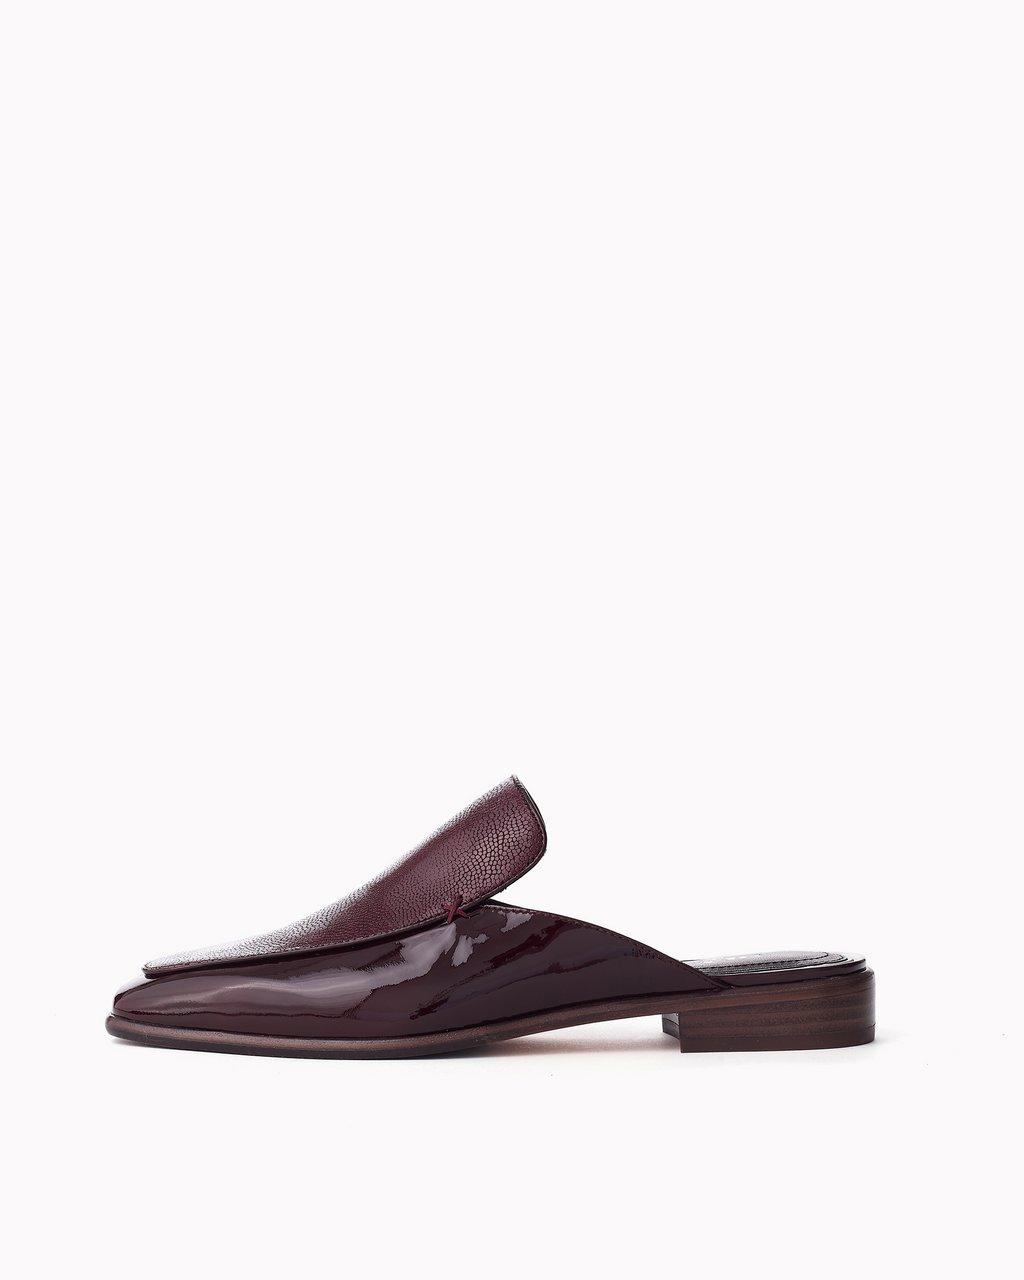 ASLEN LOAFER MULE